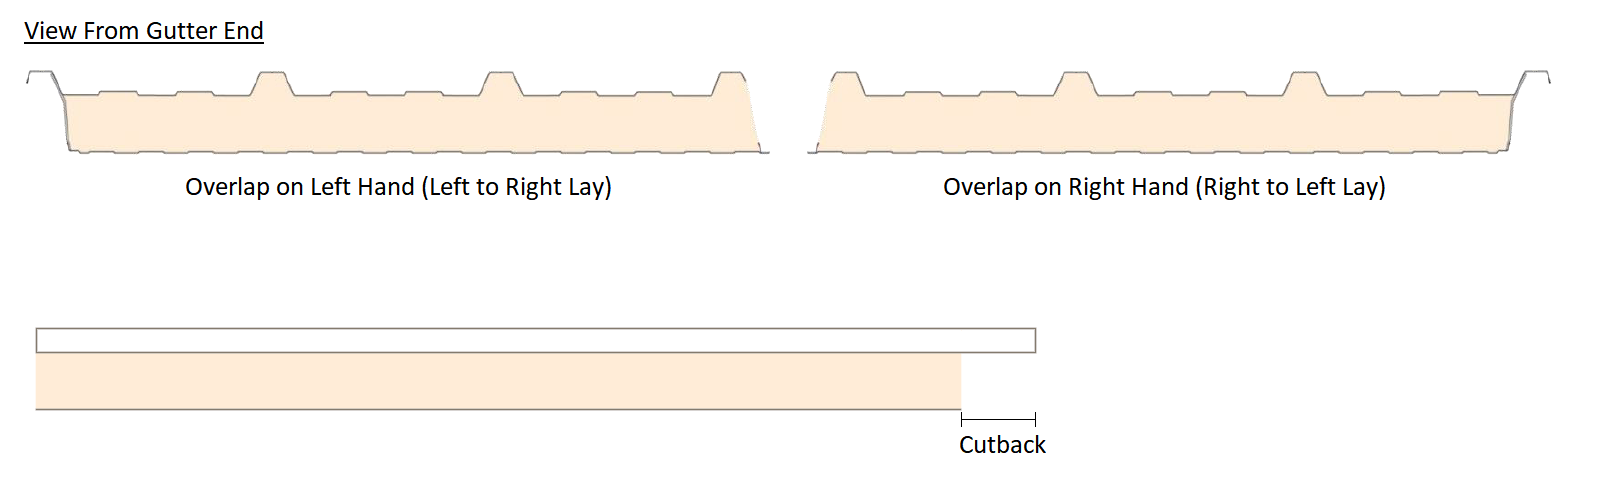 overlap and cutback details